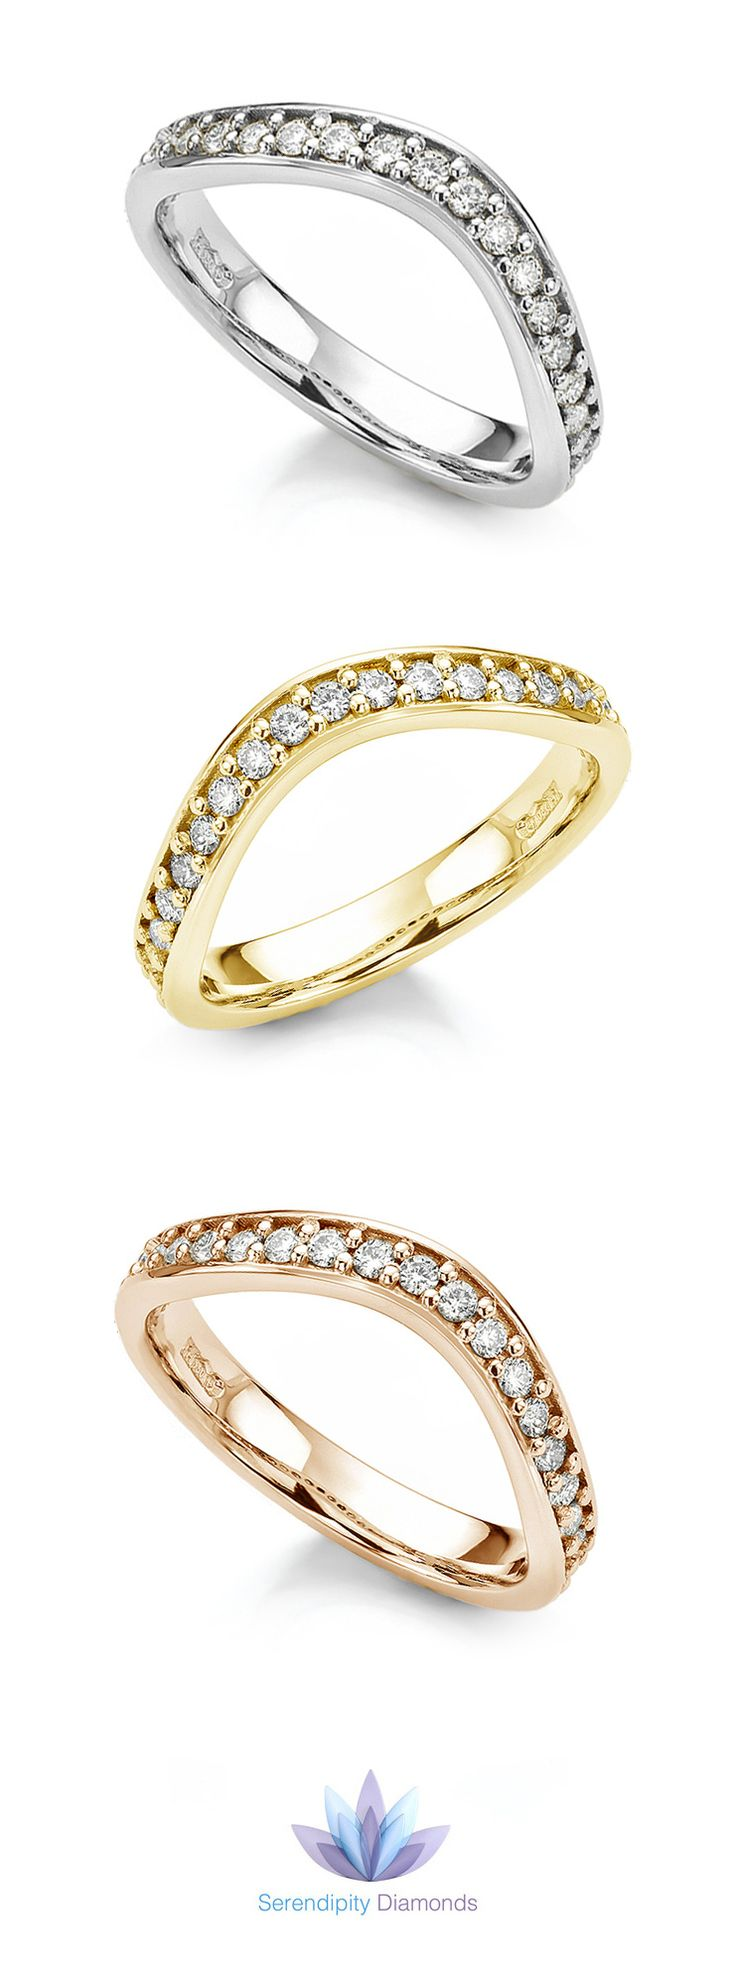 Gently Shaped Diamond Set Wedding Ring A Gentle Curve Designed To Flow  Around An Engagement